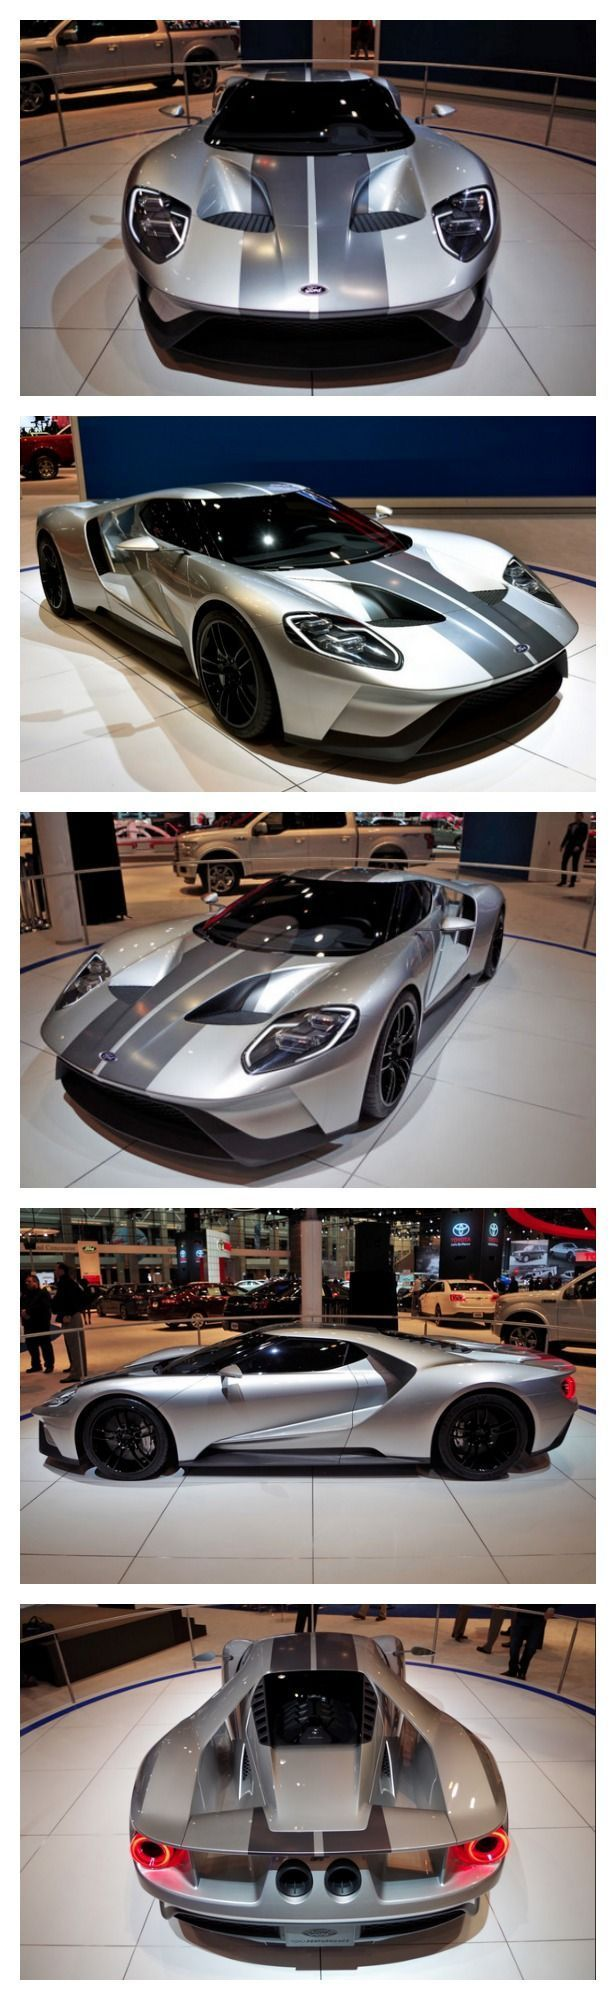 The new ford gt supercar is breathtaking in a liquid silver paint job